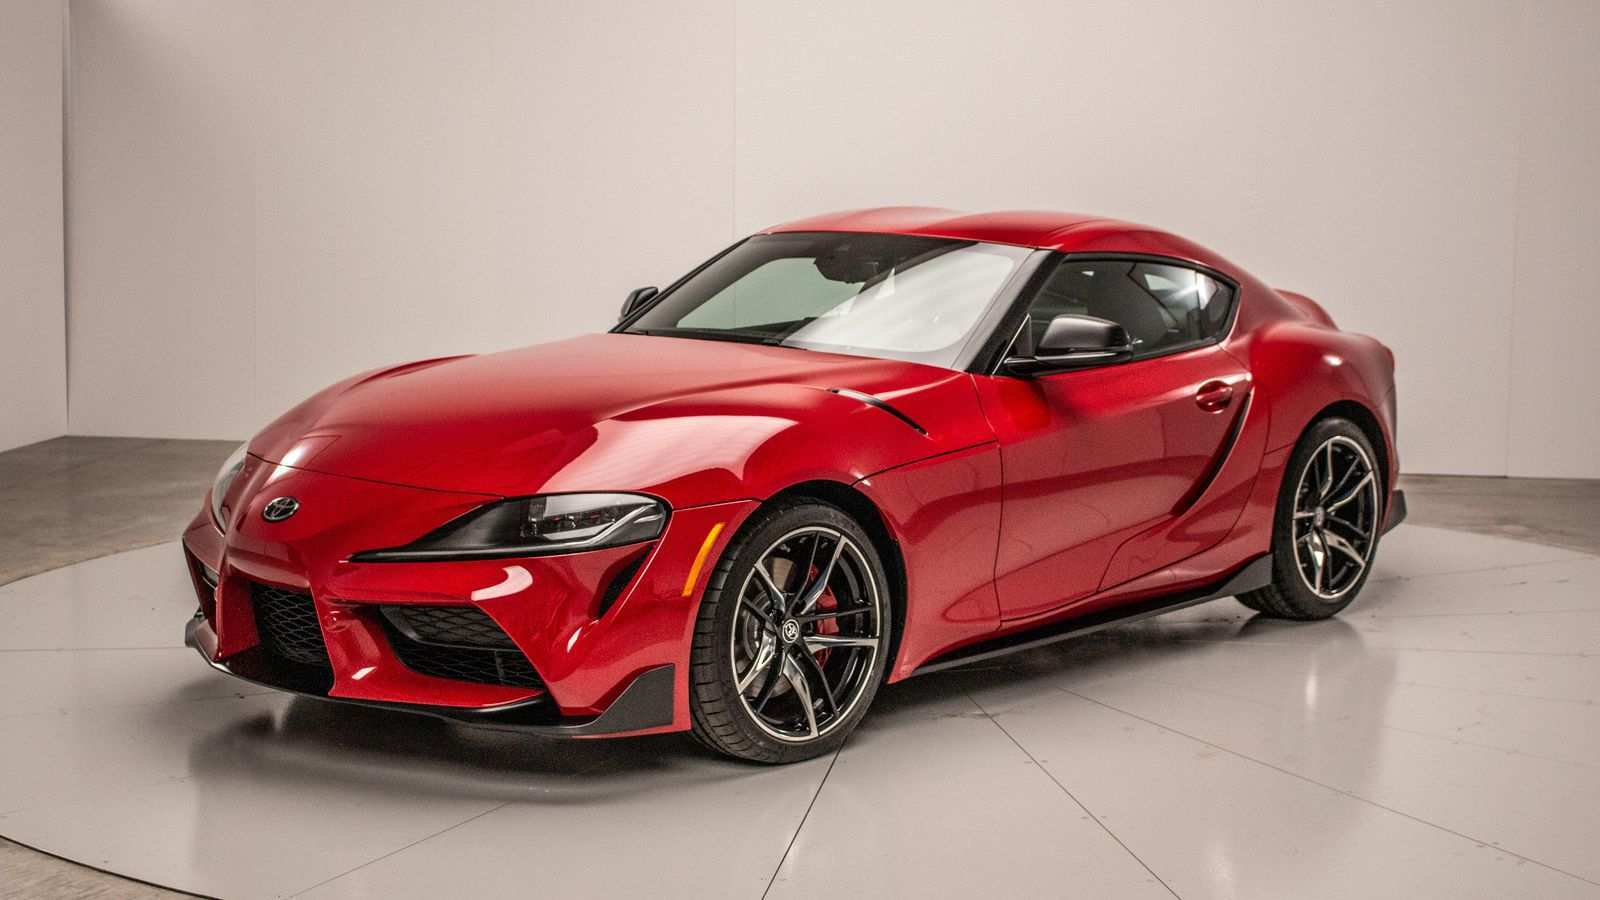 85 A Pictures Of The 2020 Toyota Supra Specs And Review